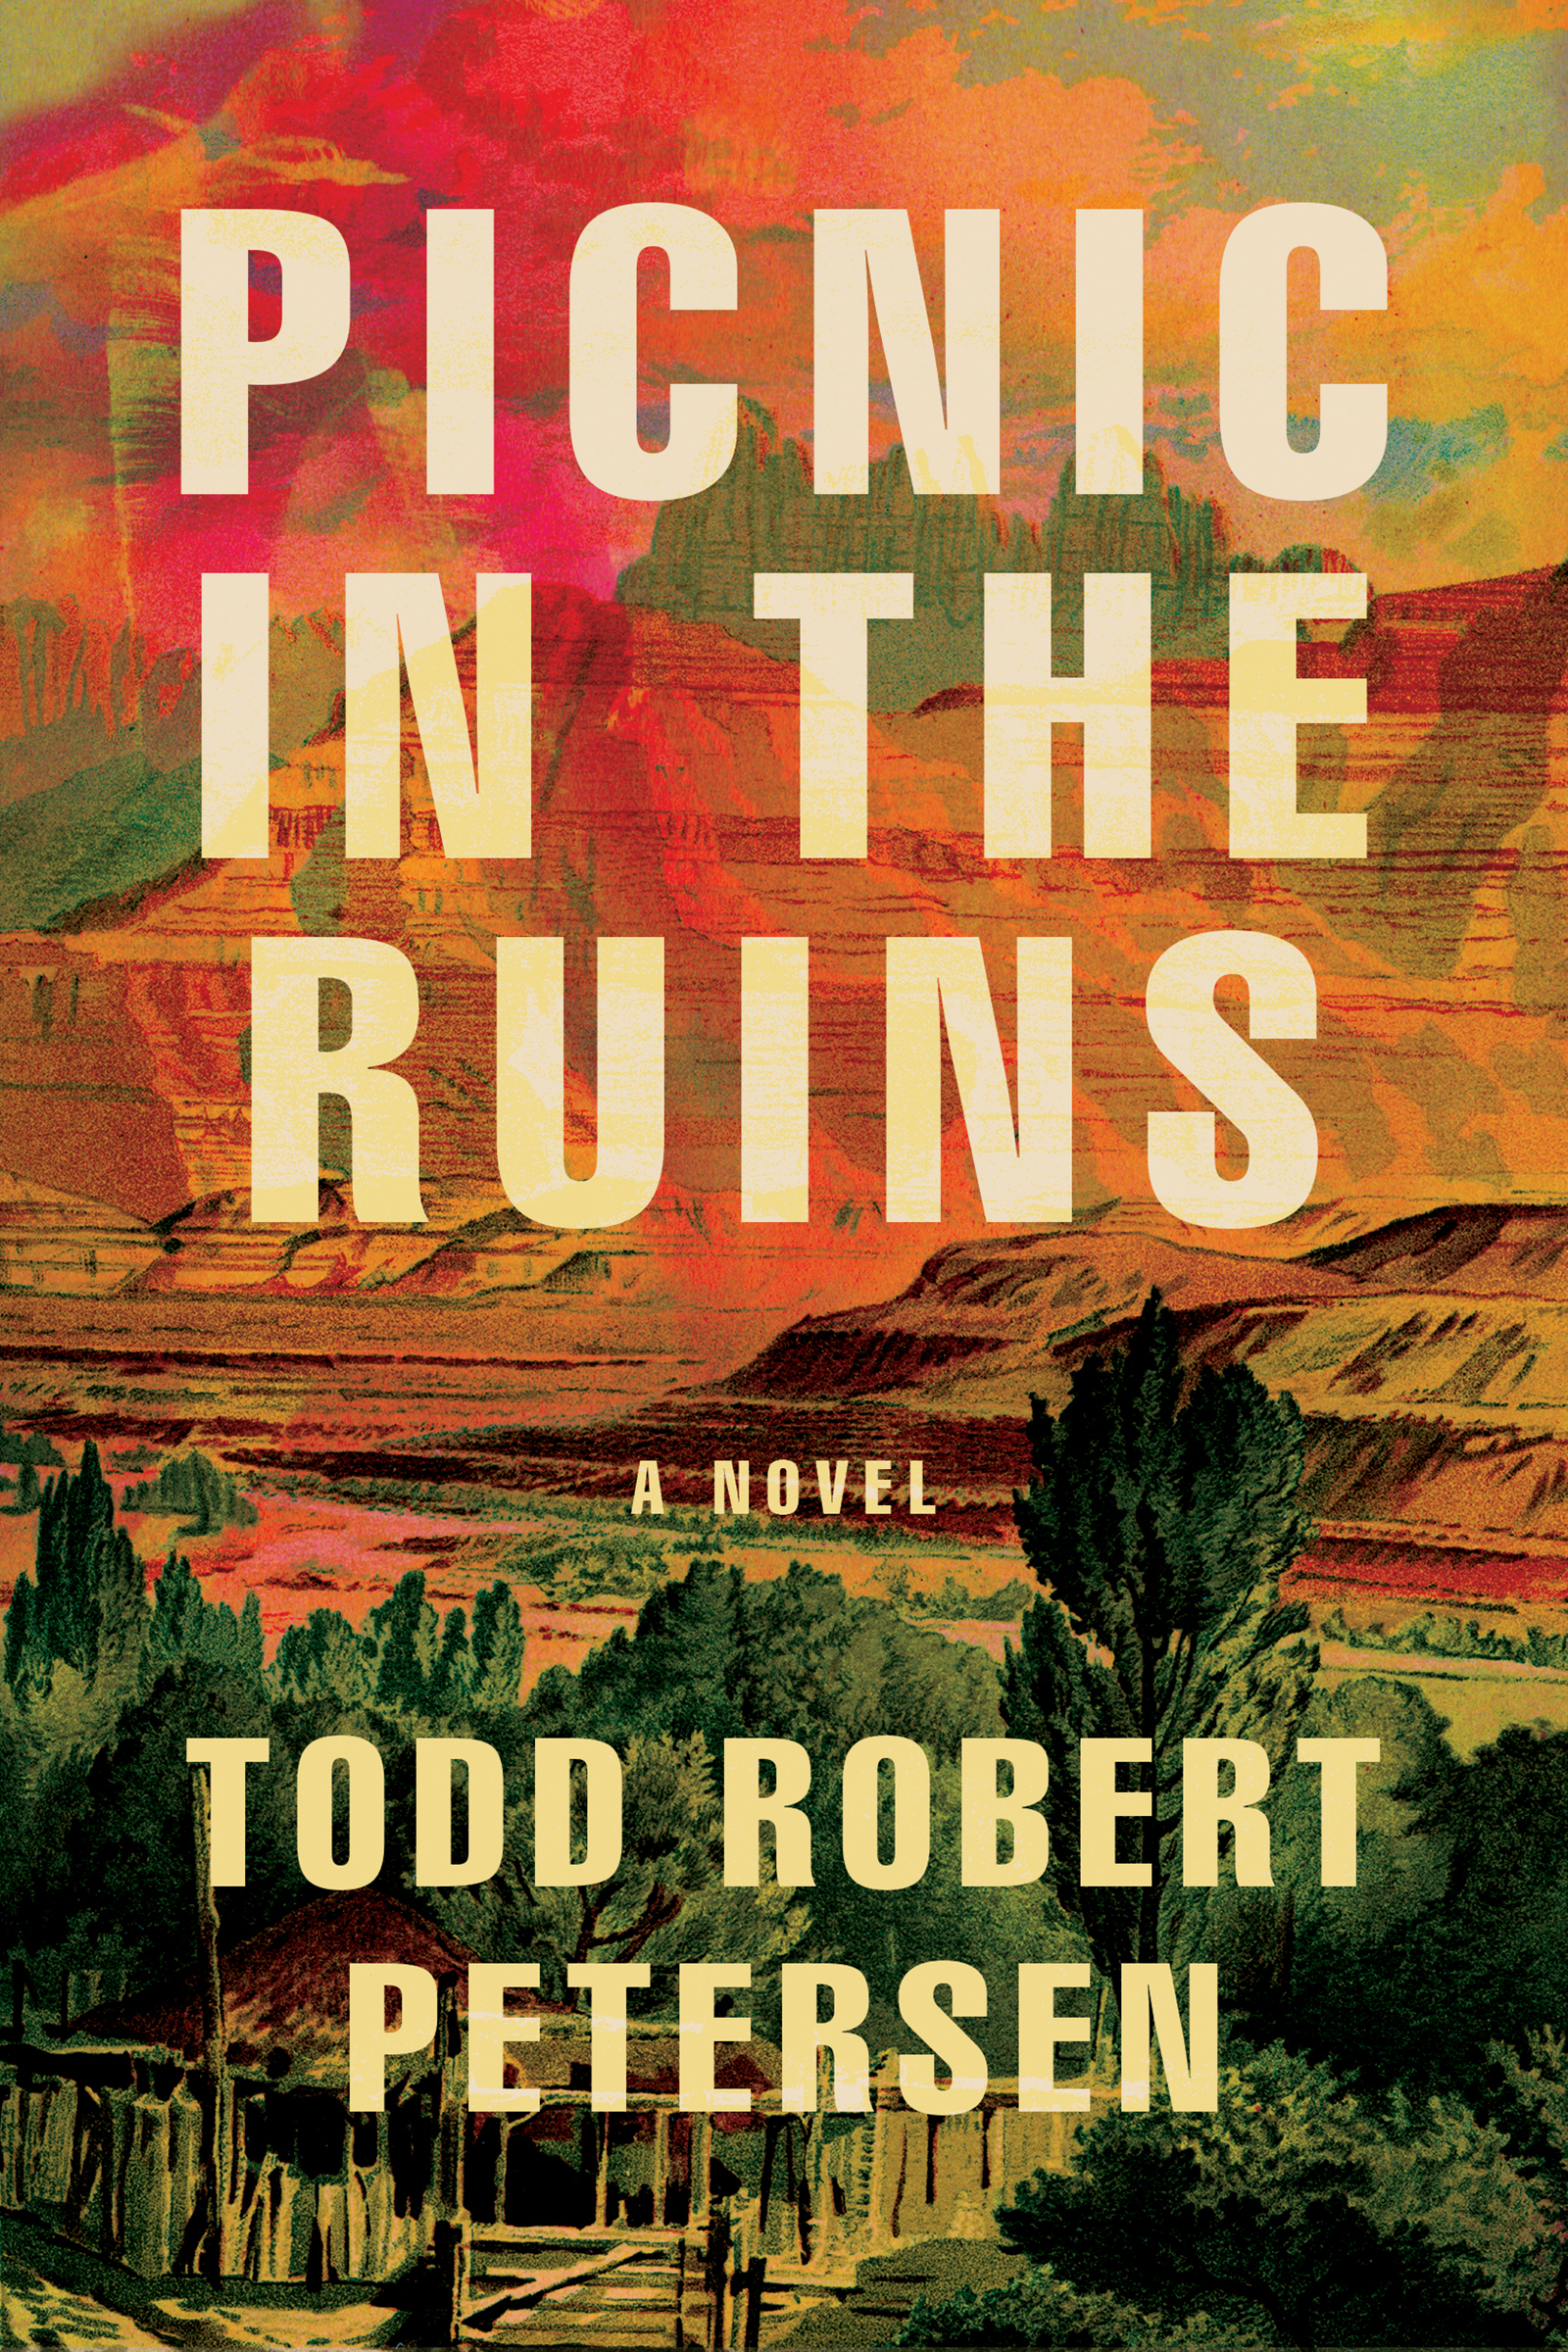 [PDF] [EPUB] Picnic in the Ruins Download by Todd Robert Petersen